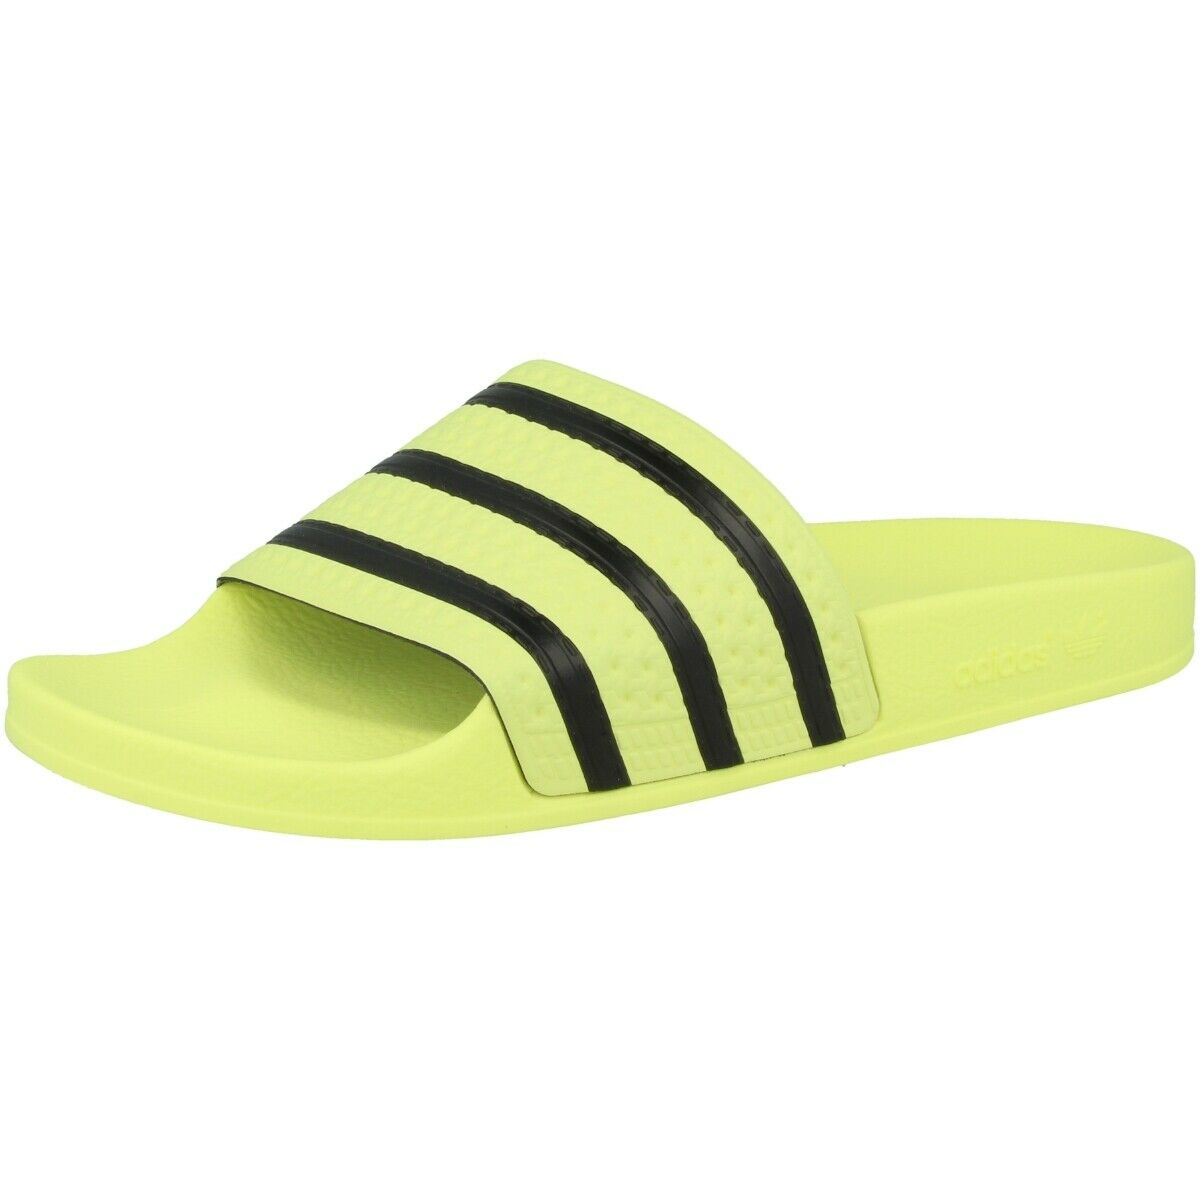 Adidas Adilette w flip flops bathing sandals pool shoes loafers yellow